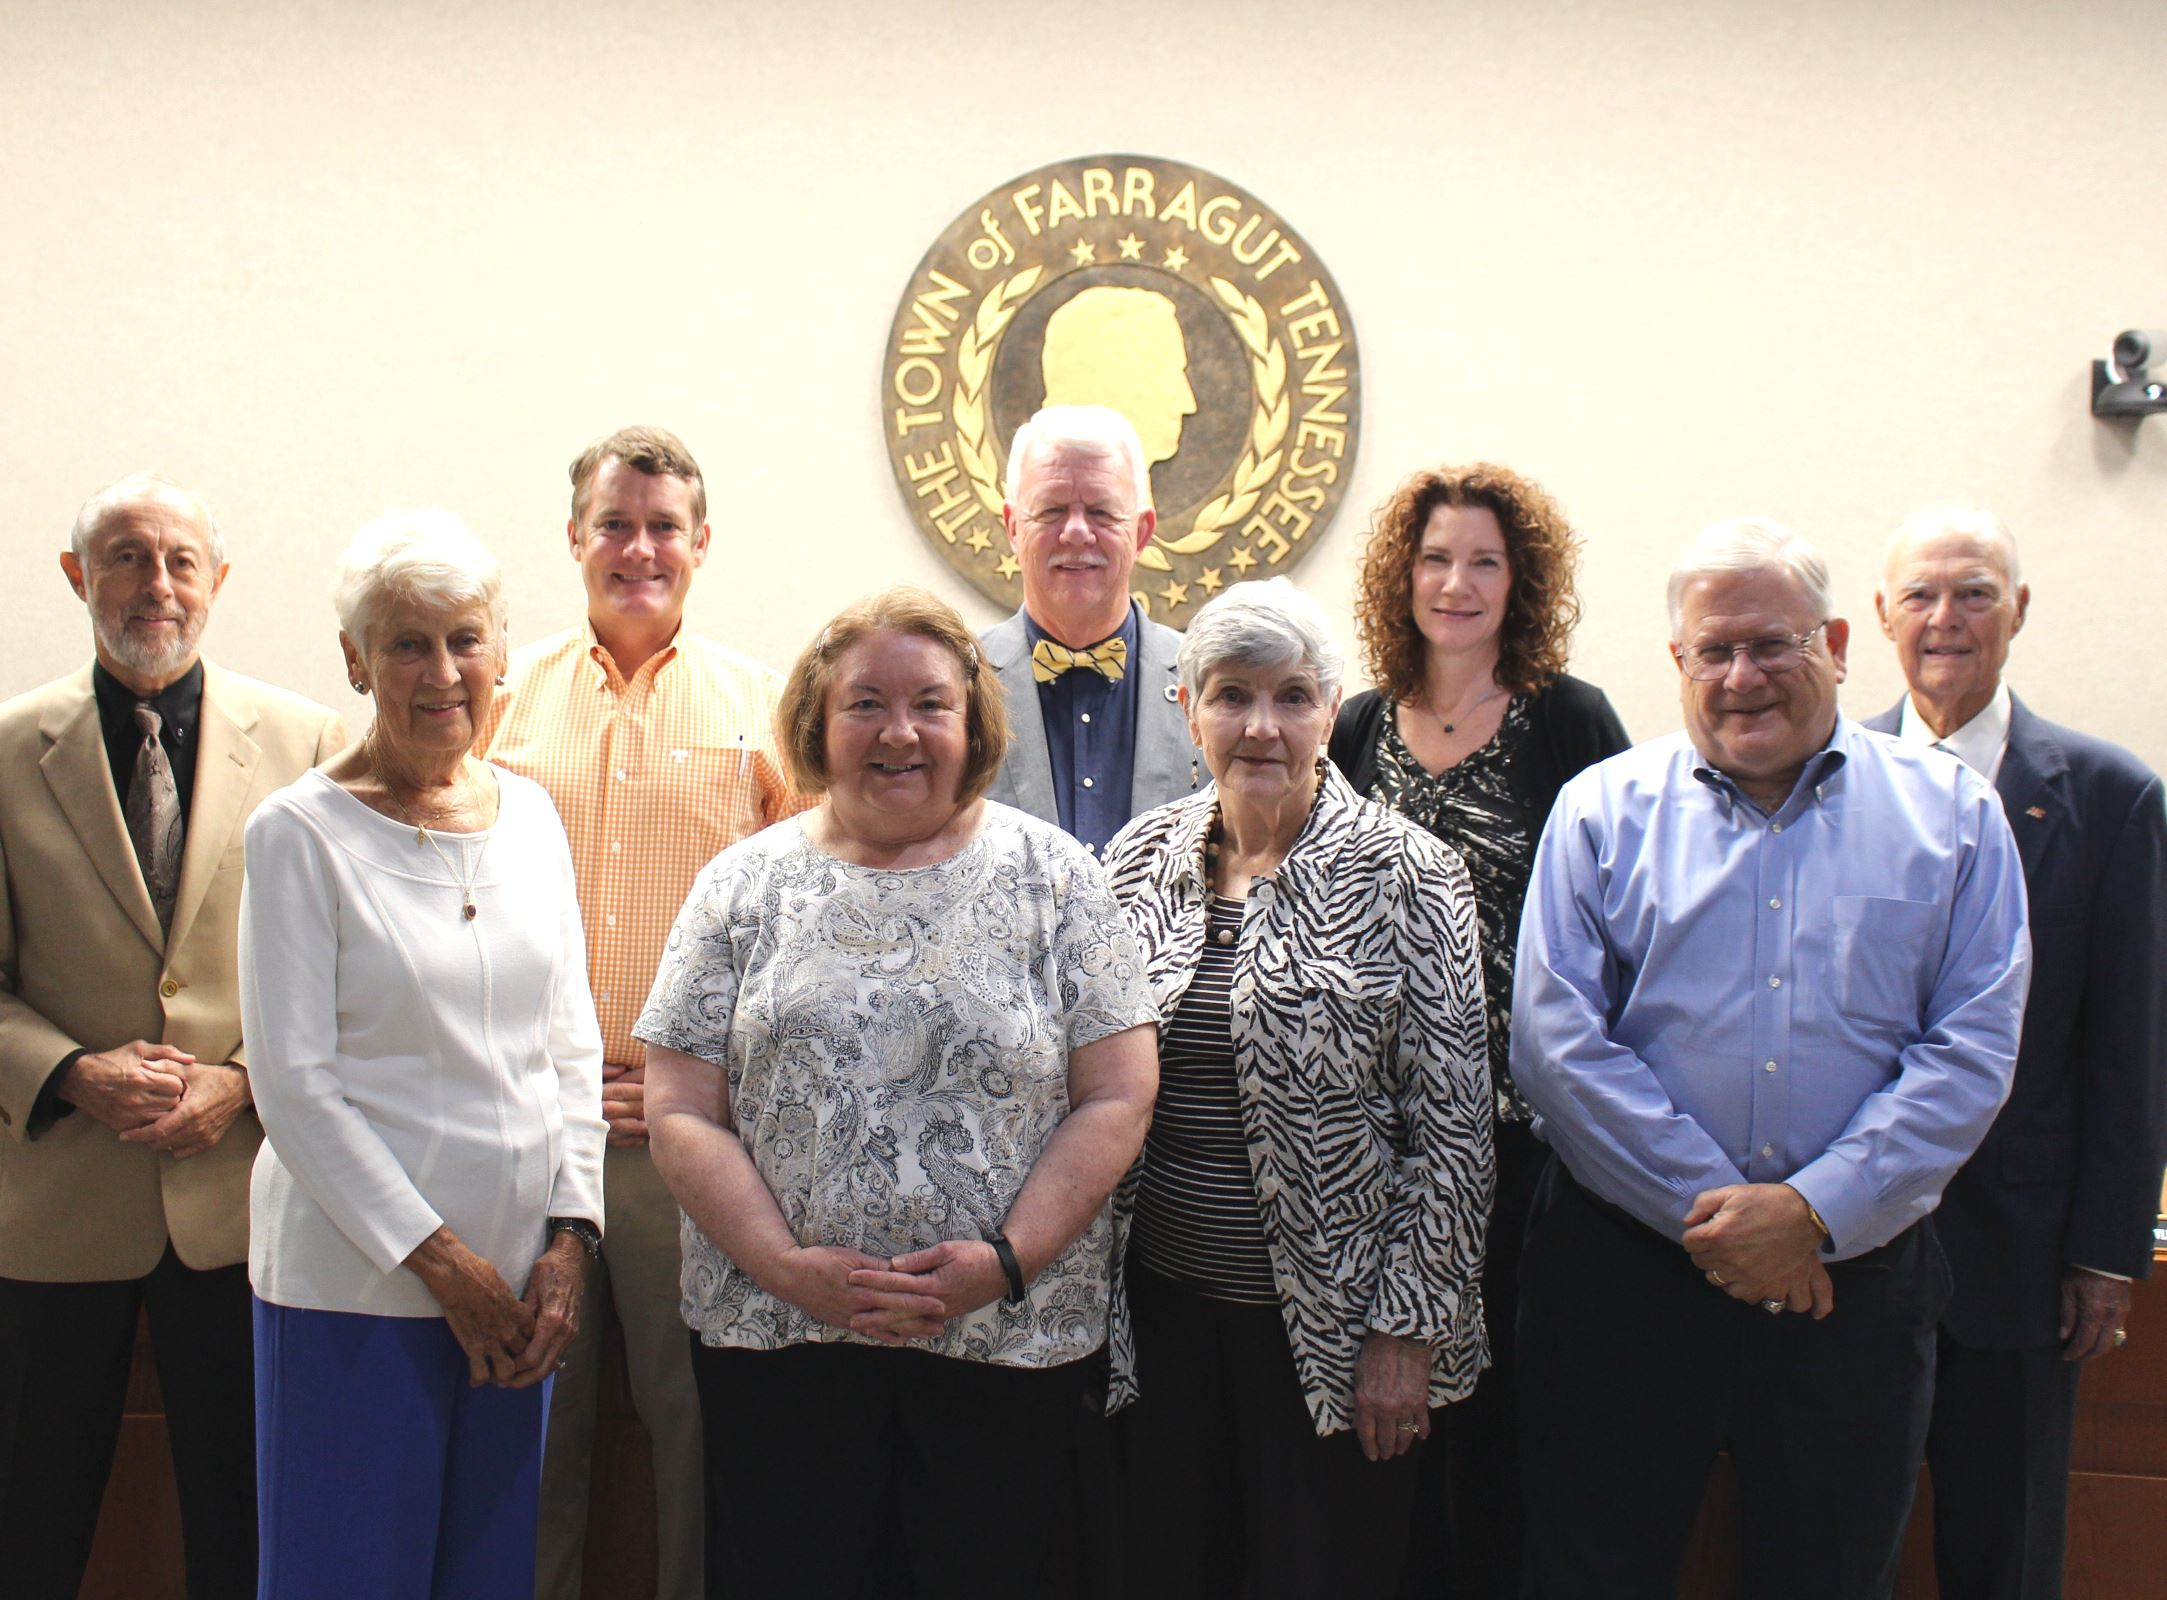 FY2019 planning commission